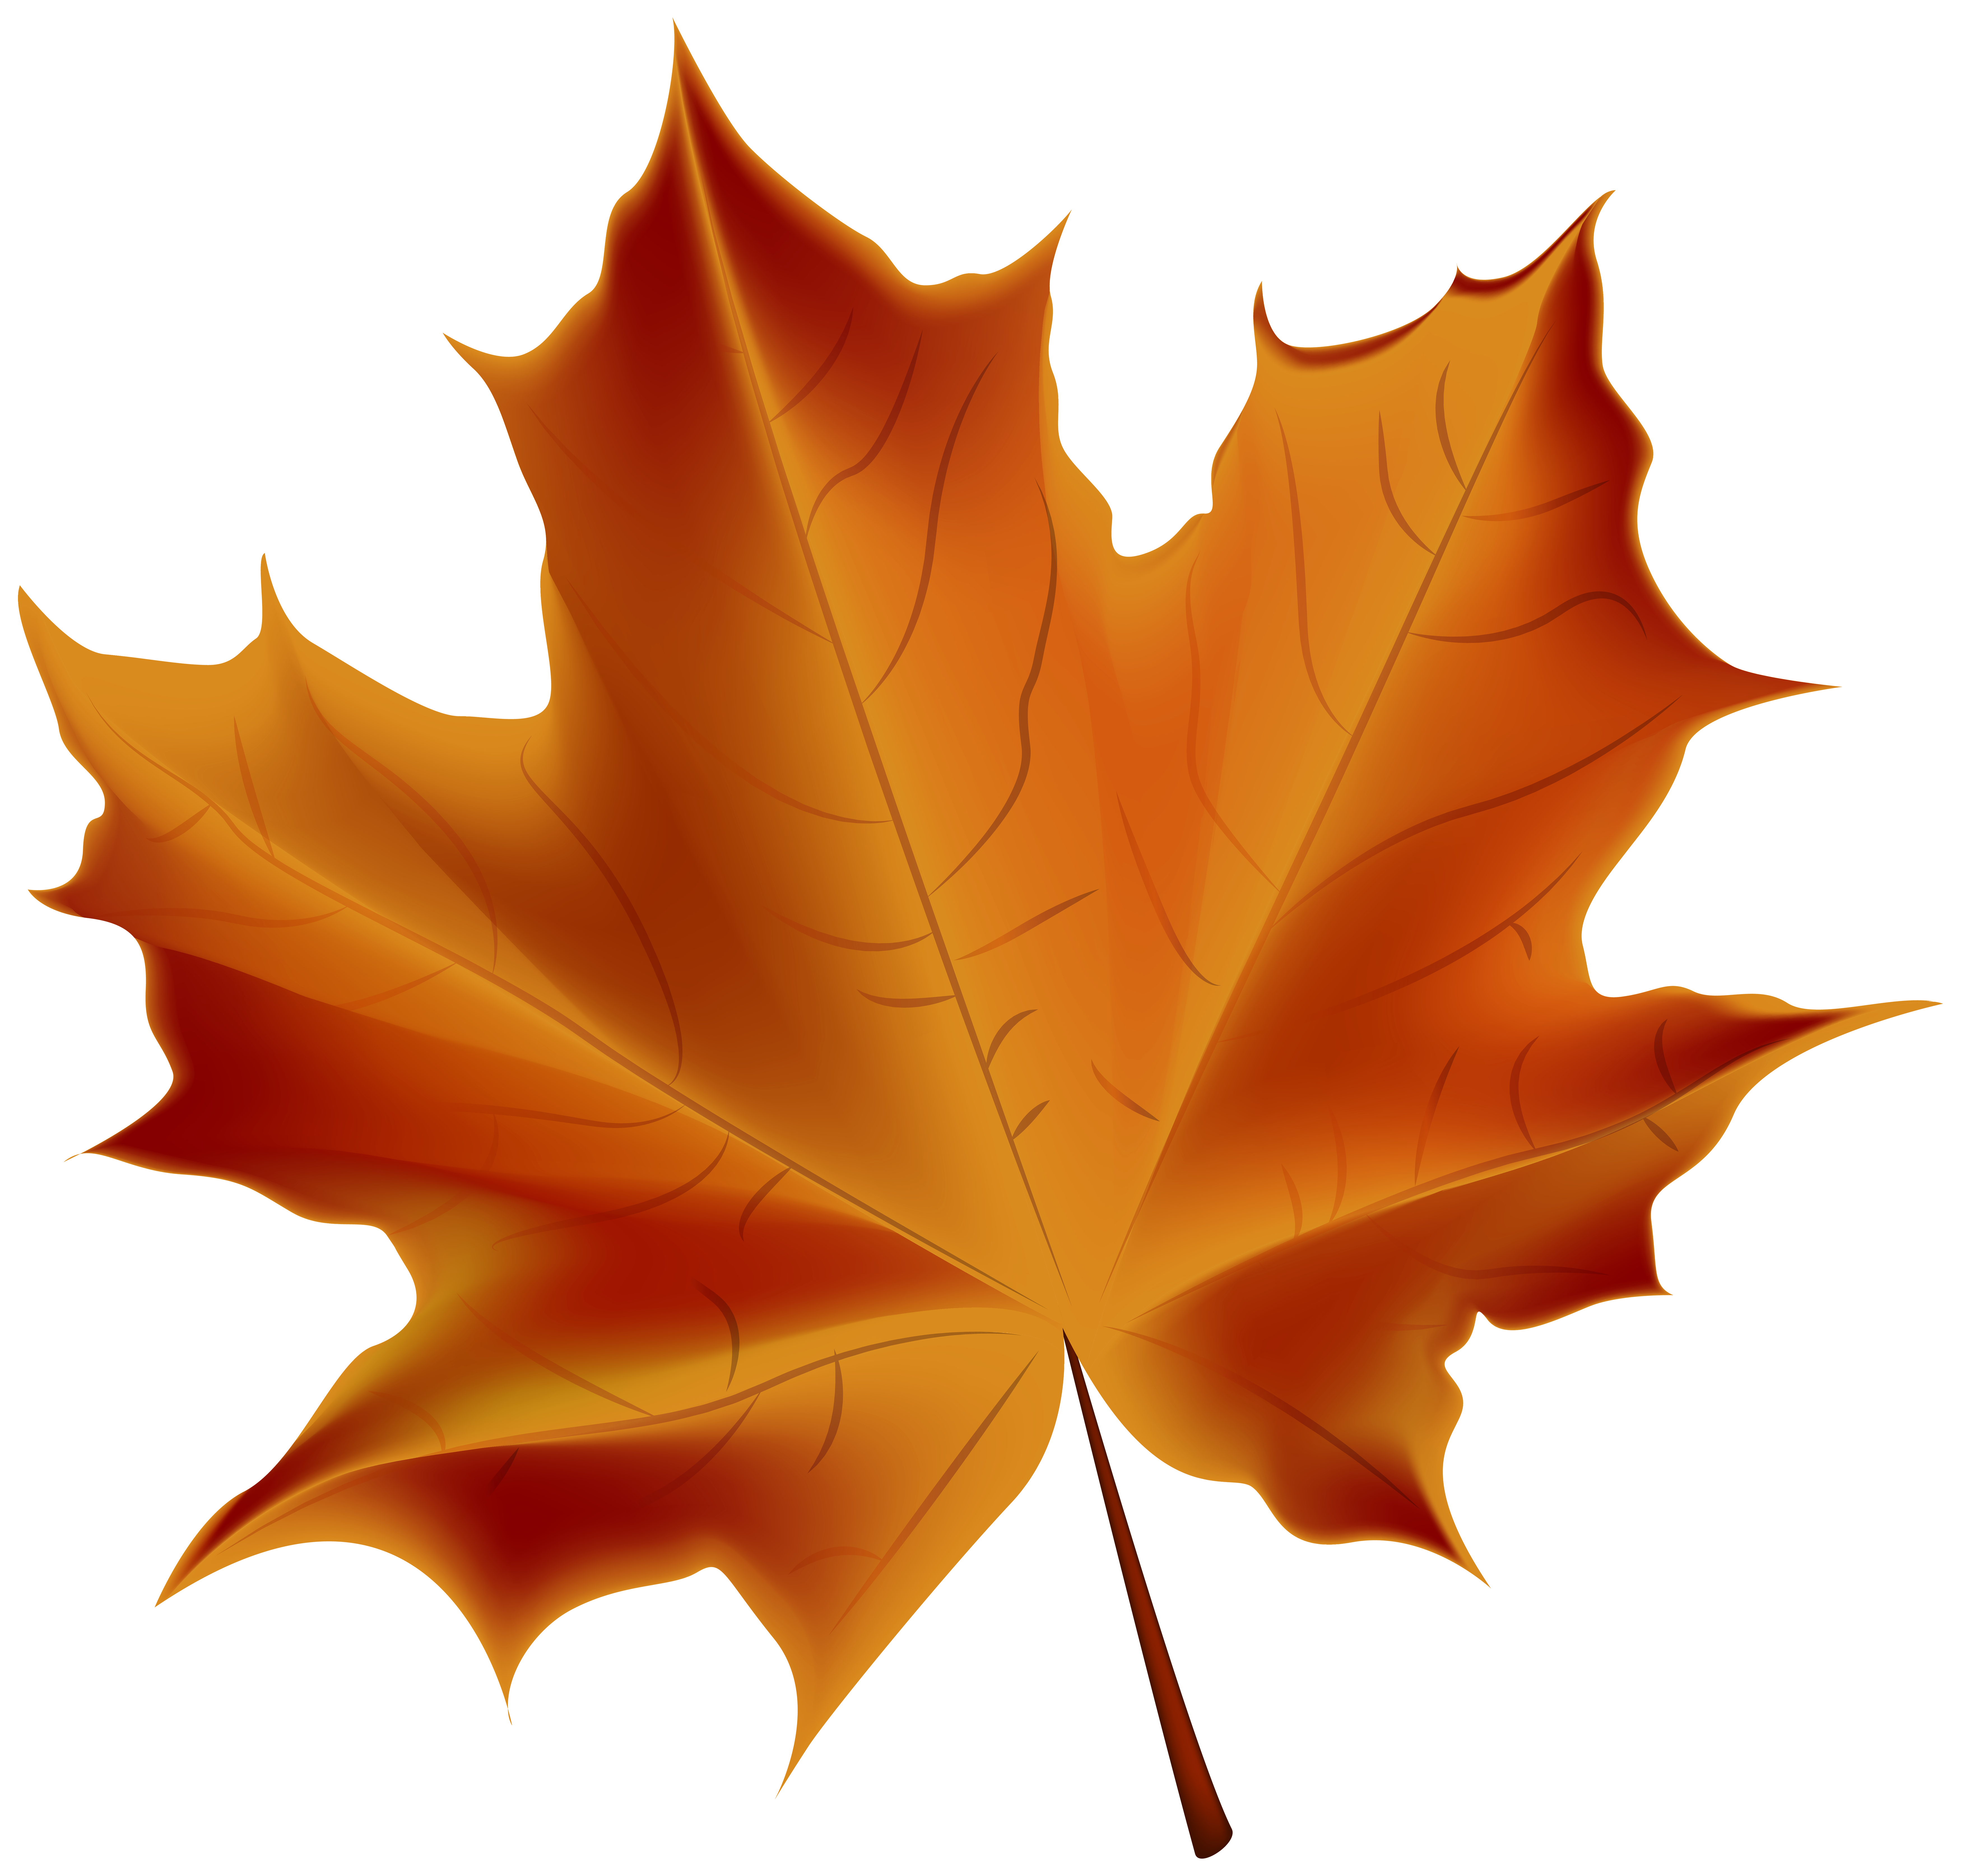 Clipart fall family. Beautiful red autumn leaf